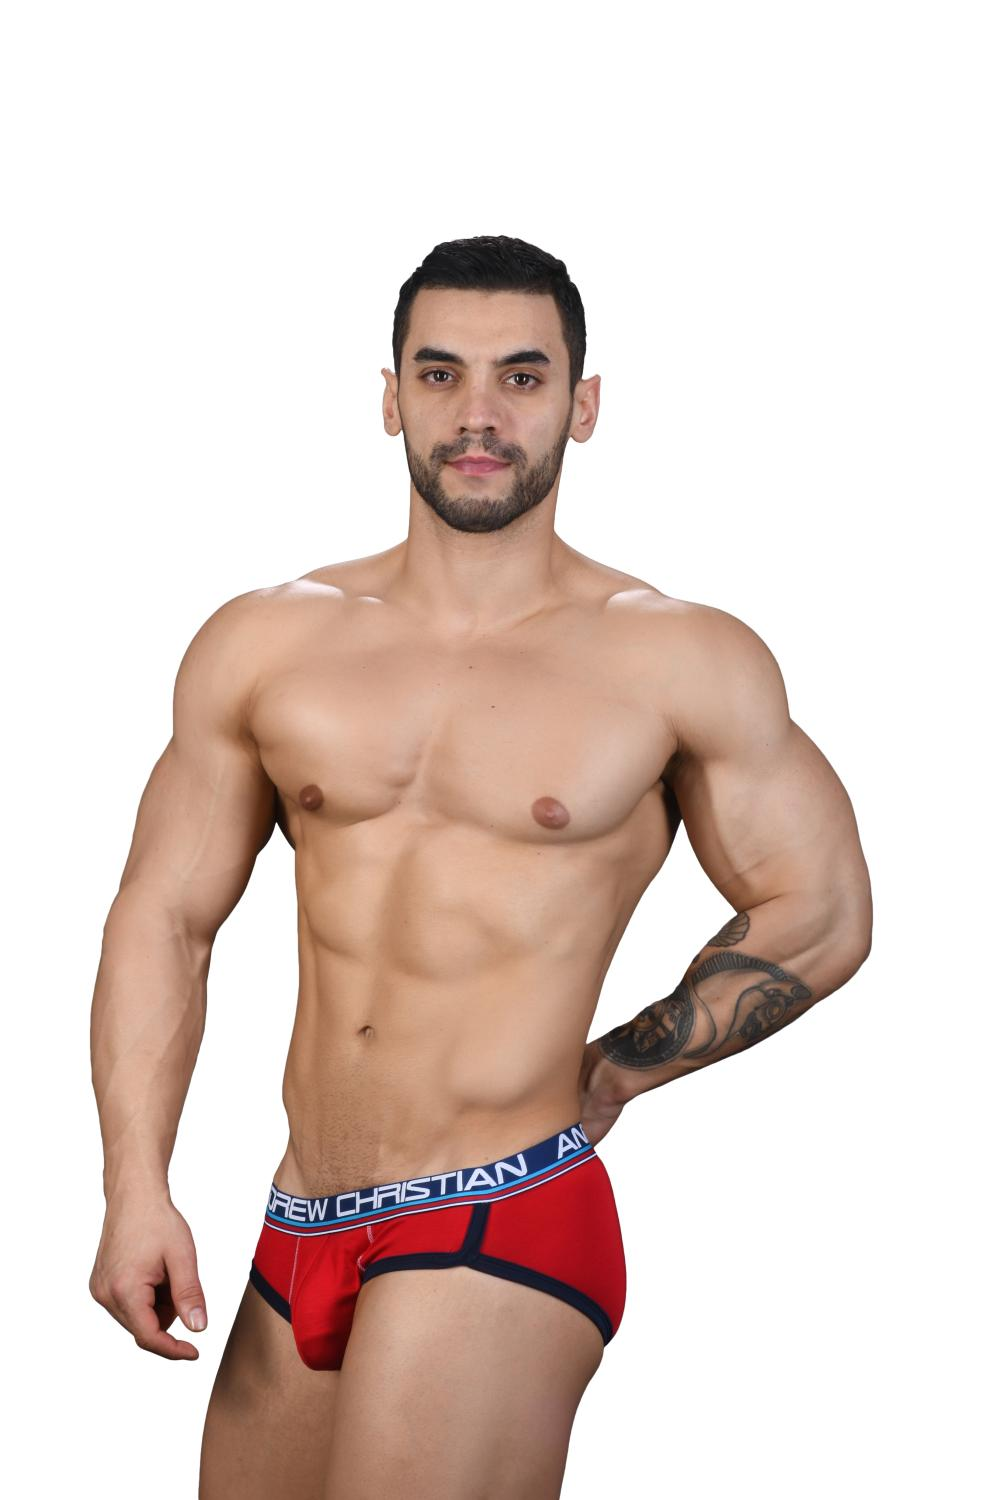 CoolFlex Modal Slipy ANDREW CHRISTIAN s Pushup kapsou Show-It Red4